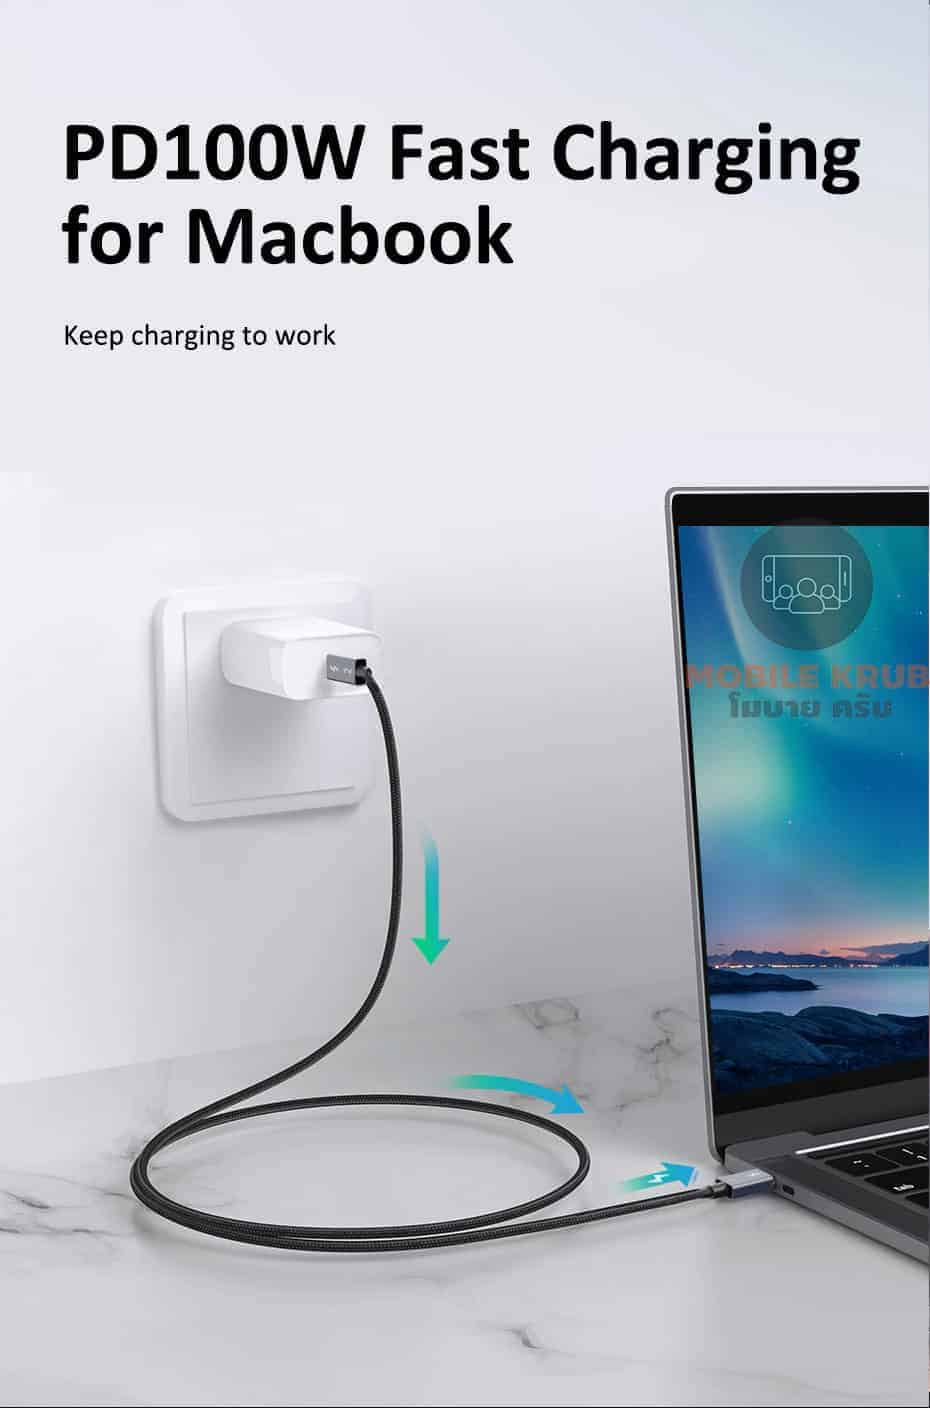 CABLETIME Thunderbolt 3 Cable USB-C to Type C PD 100W Fast Charging